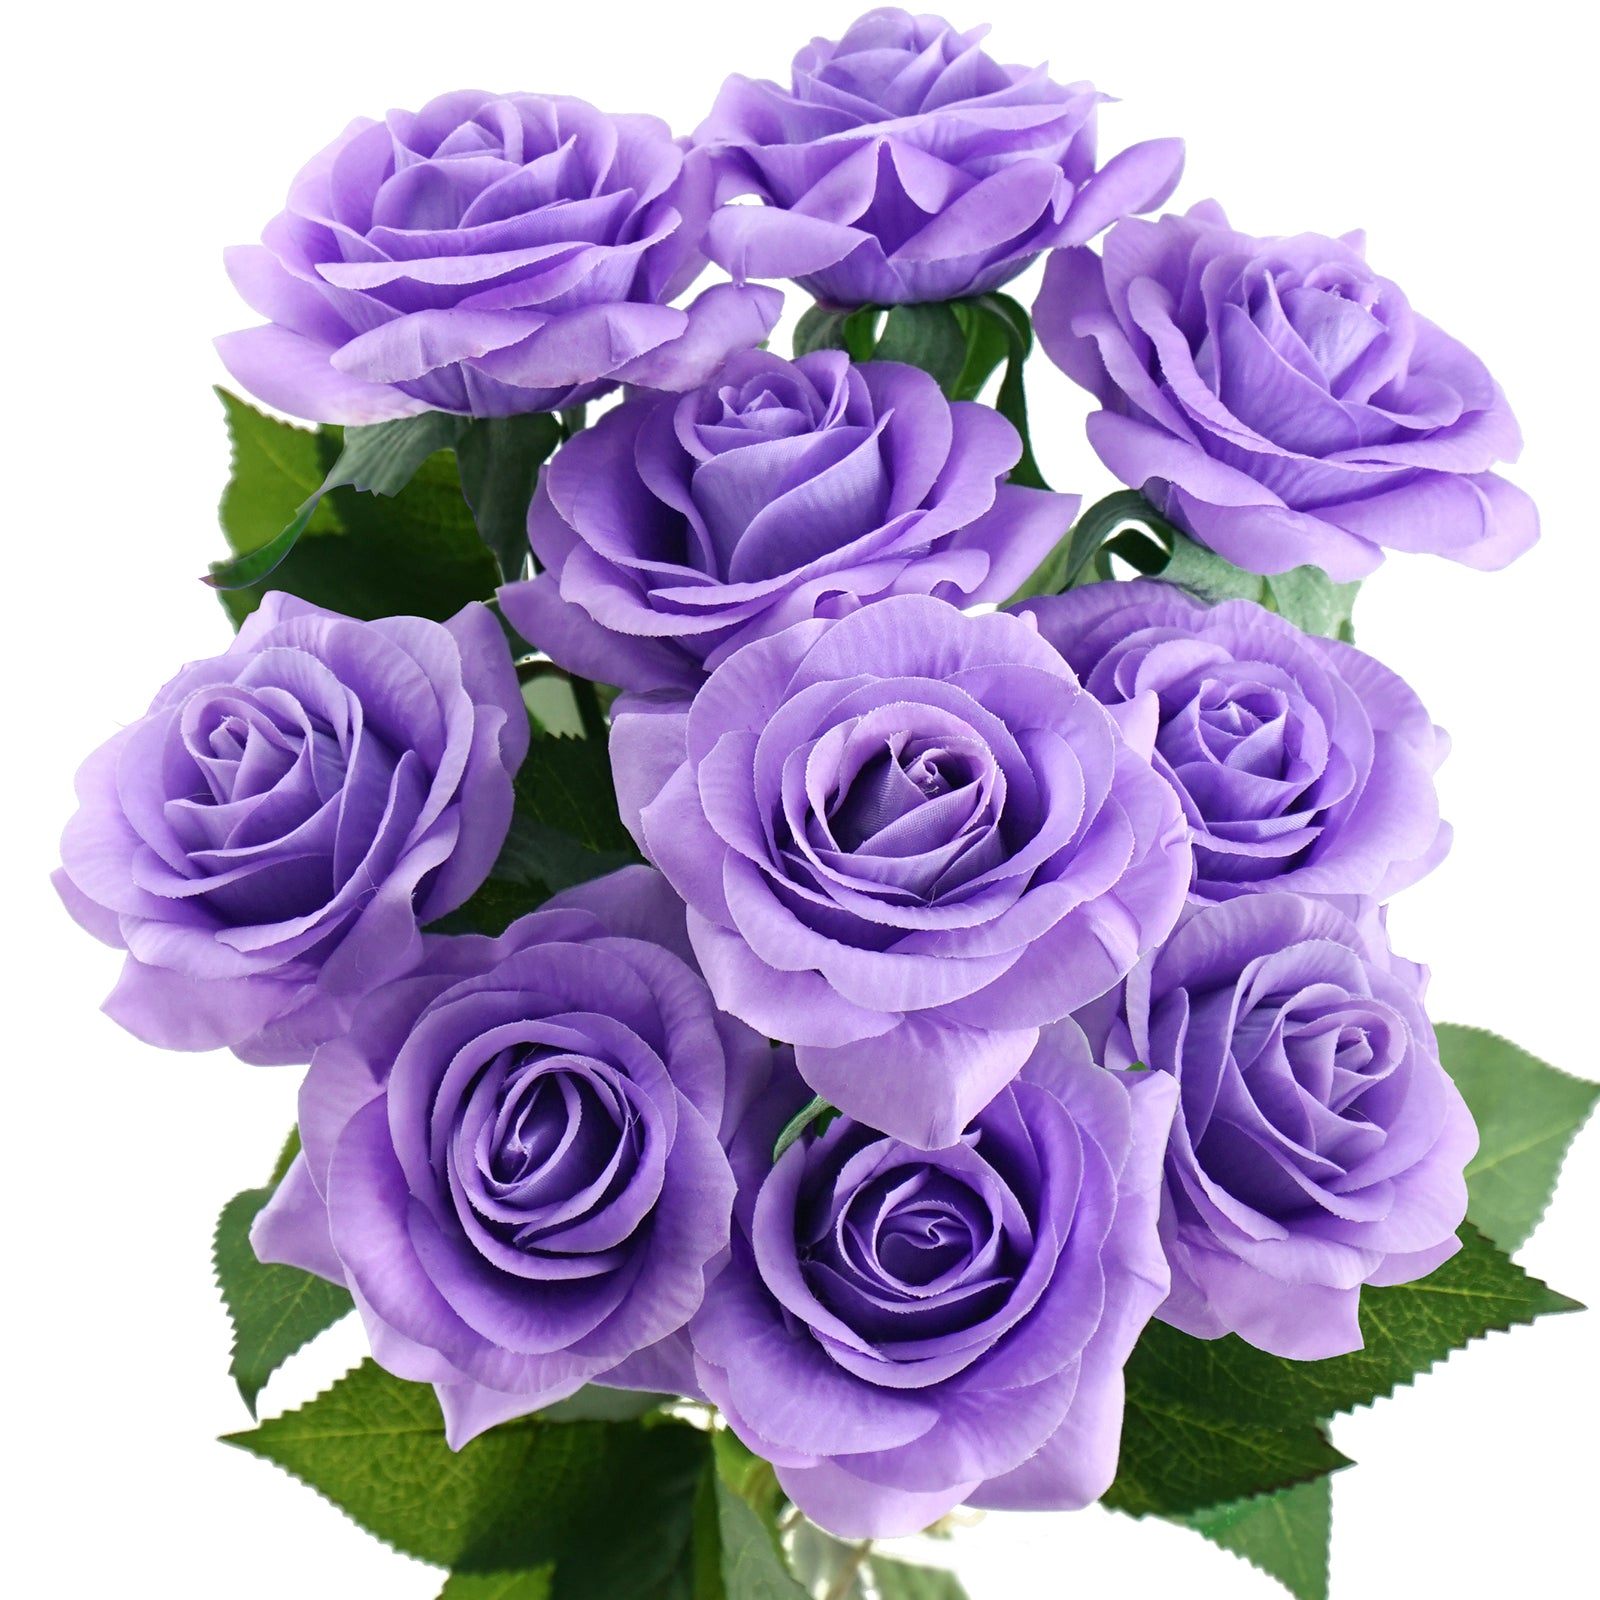 Real Touch 10 Stems Lilac Silk Artificial Roses Flowers 'Petals Feel and Look like Fresh Roses'